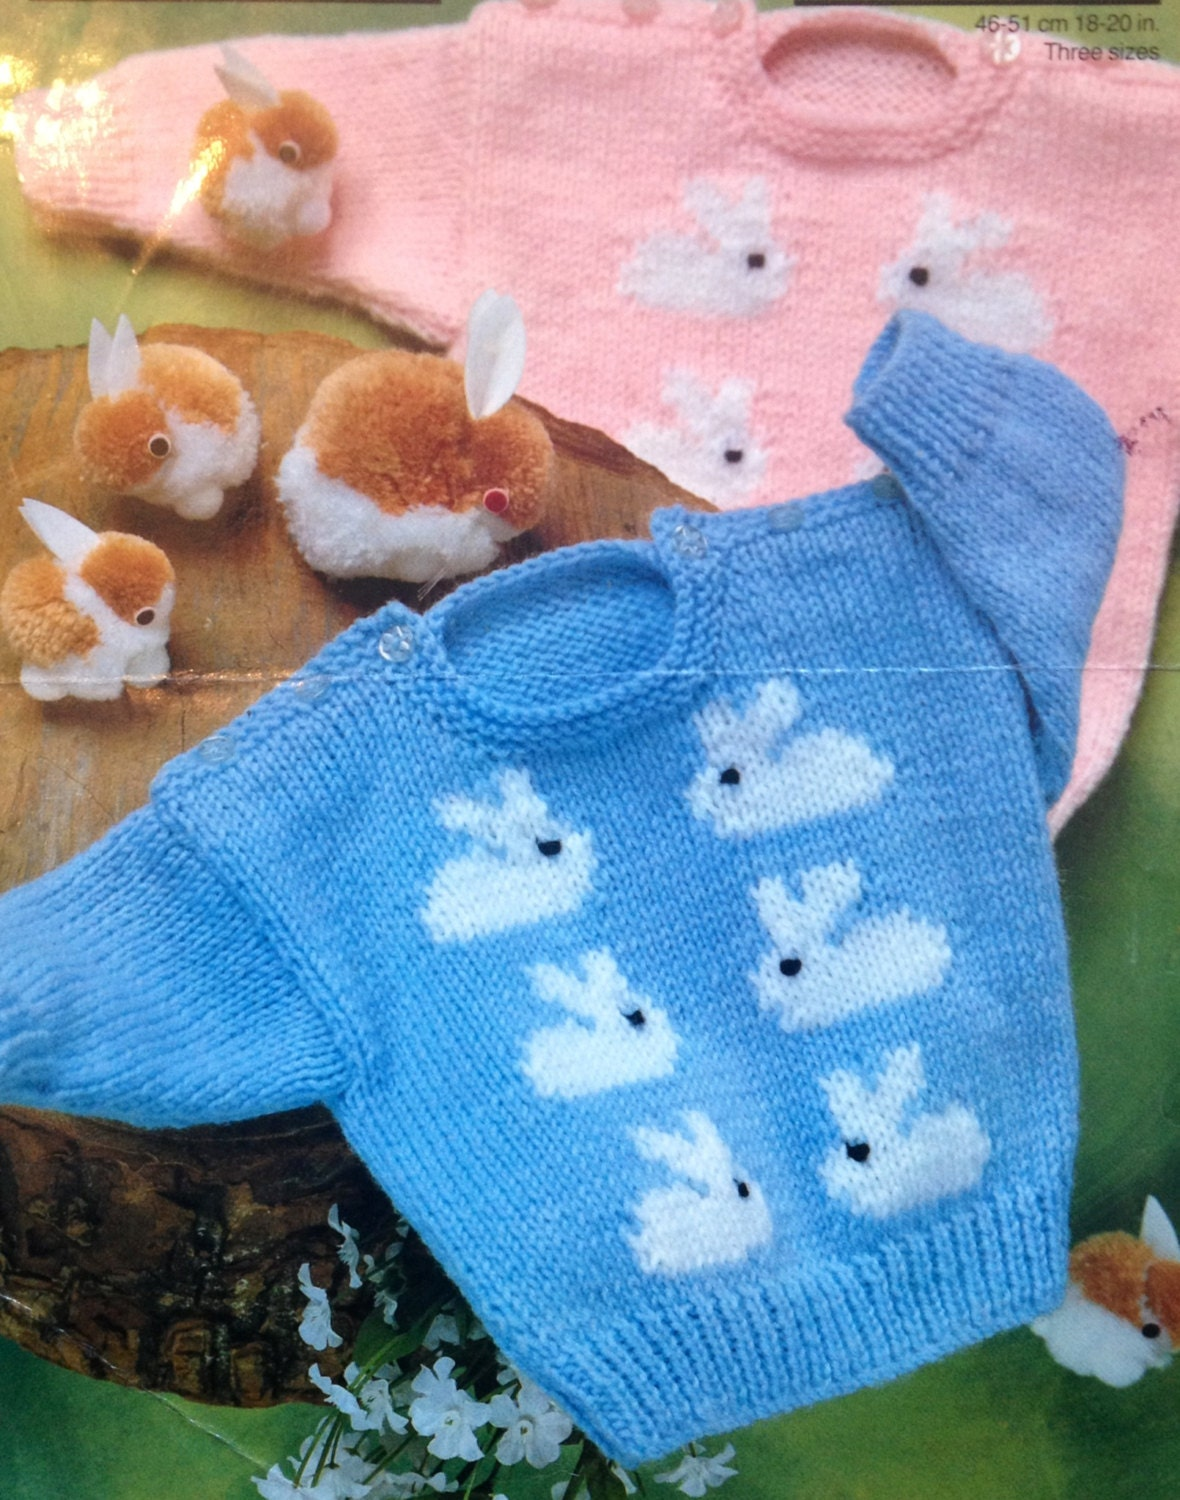 Bunny Rabbit Knitting Pattern : baby knitting pattern cute bunny rabbit jumpers in size 18-20